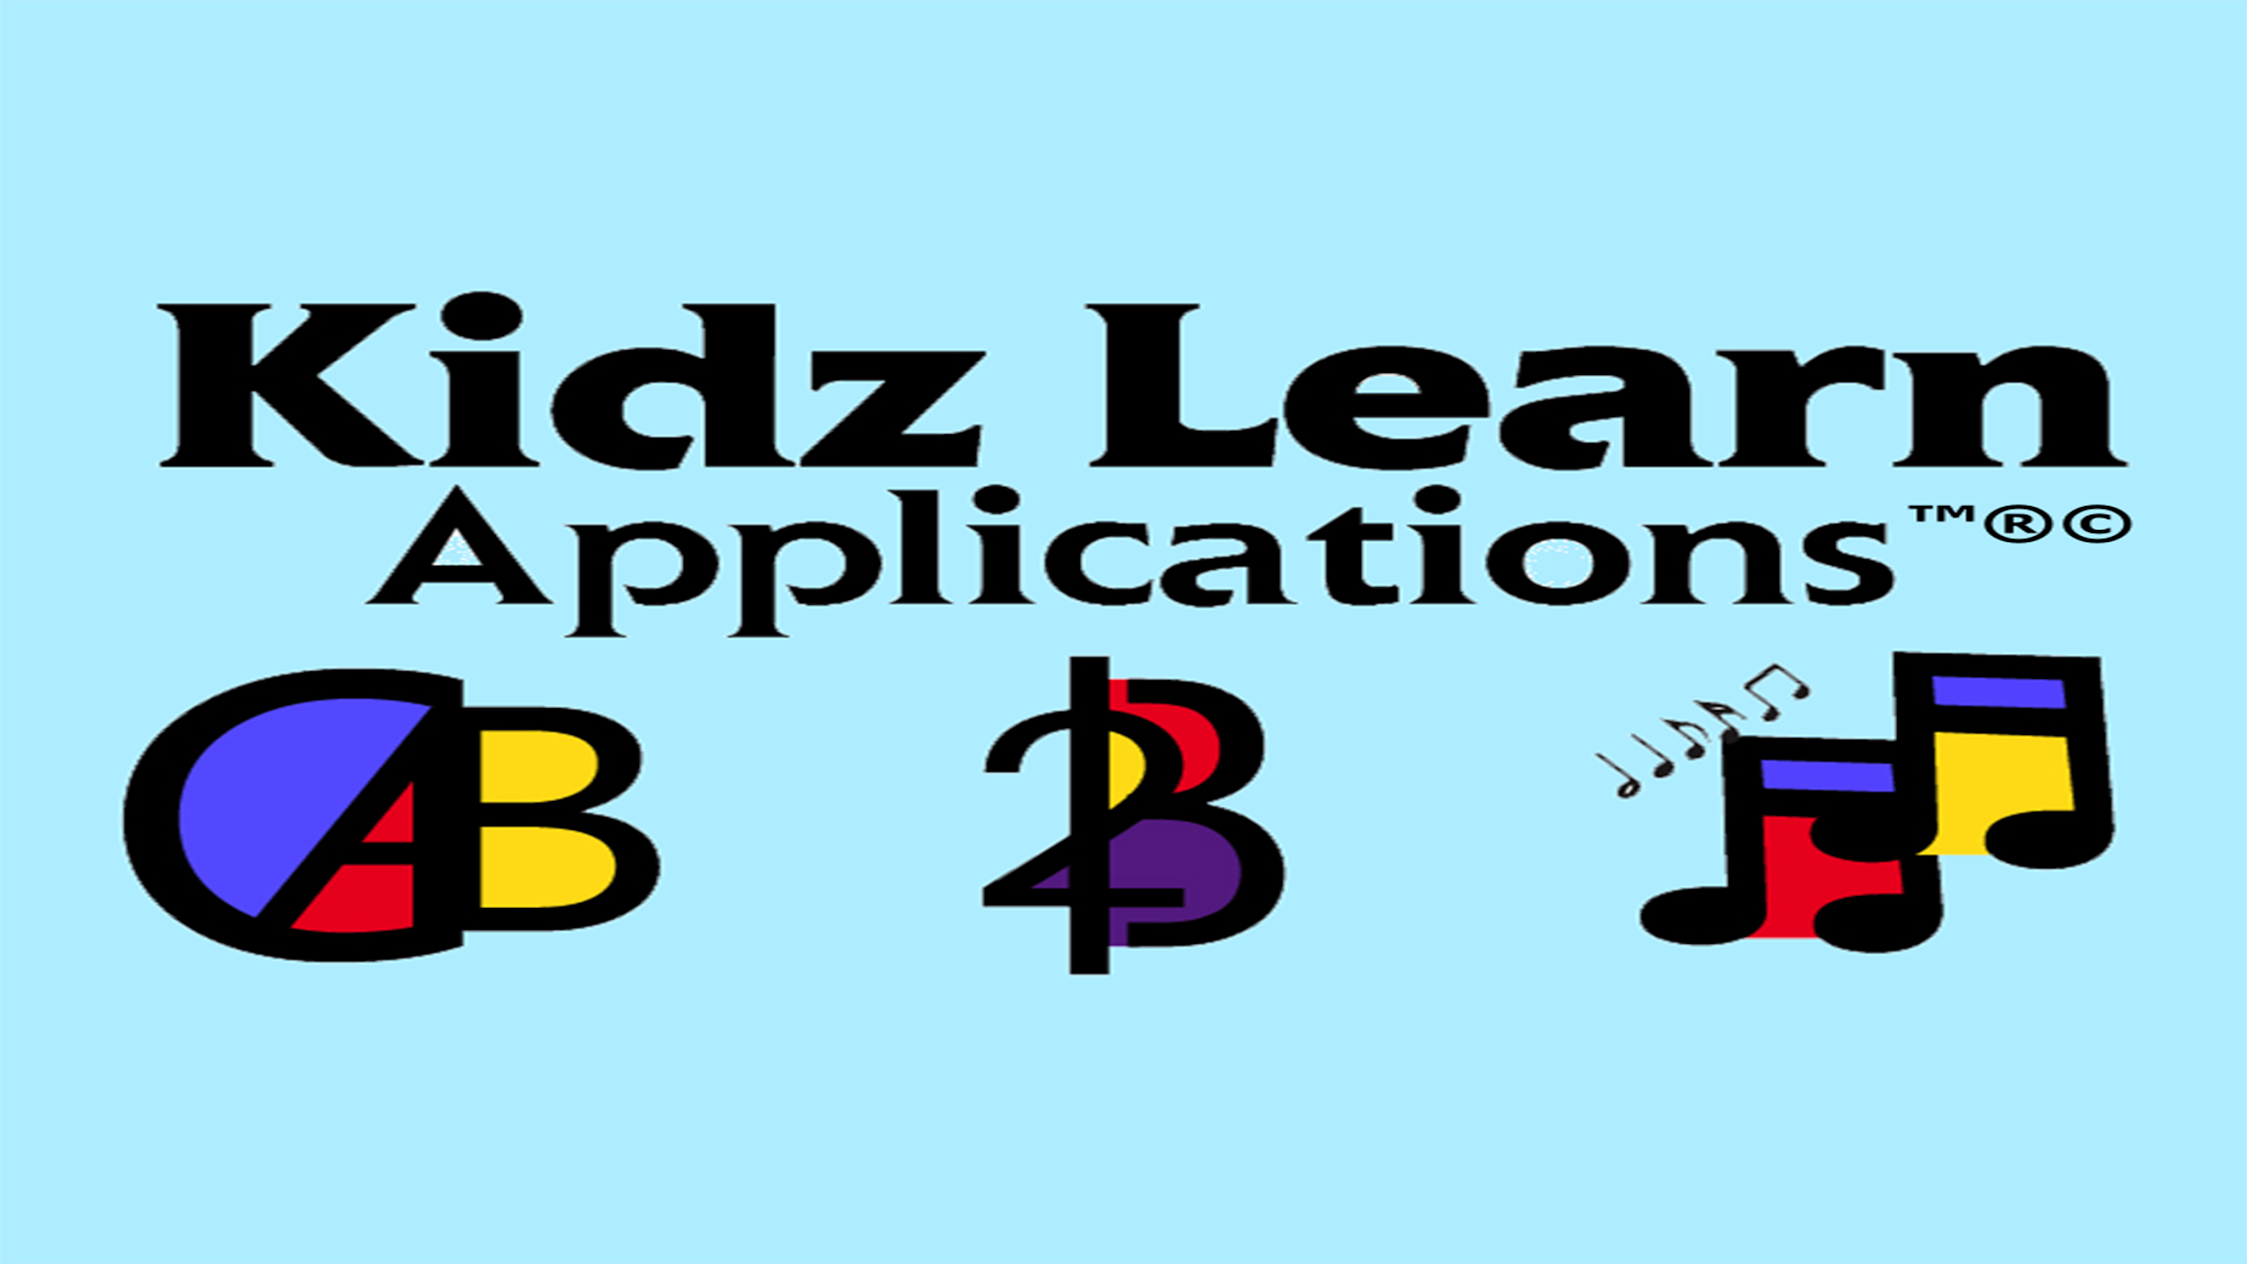 Kidz Learn Applications™